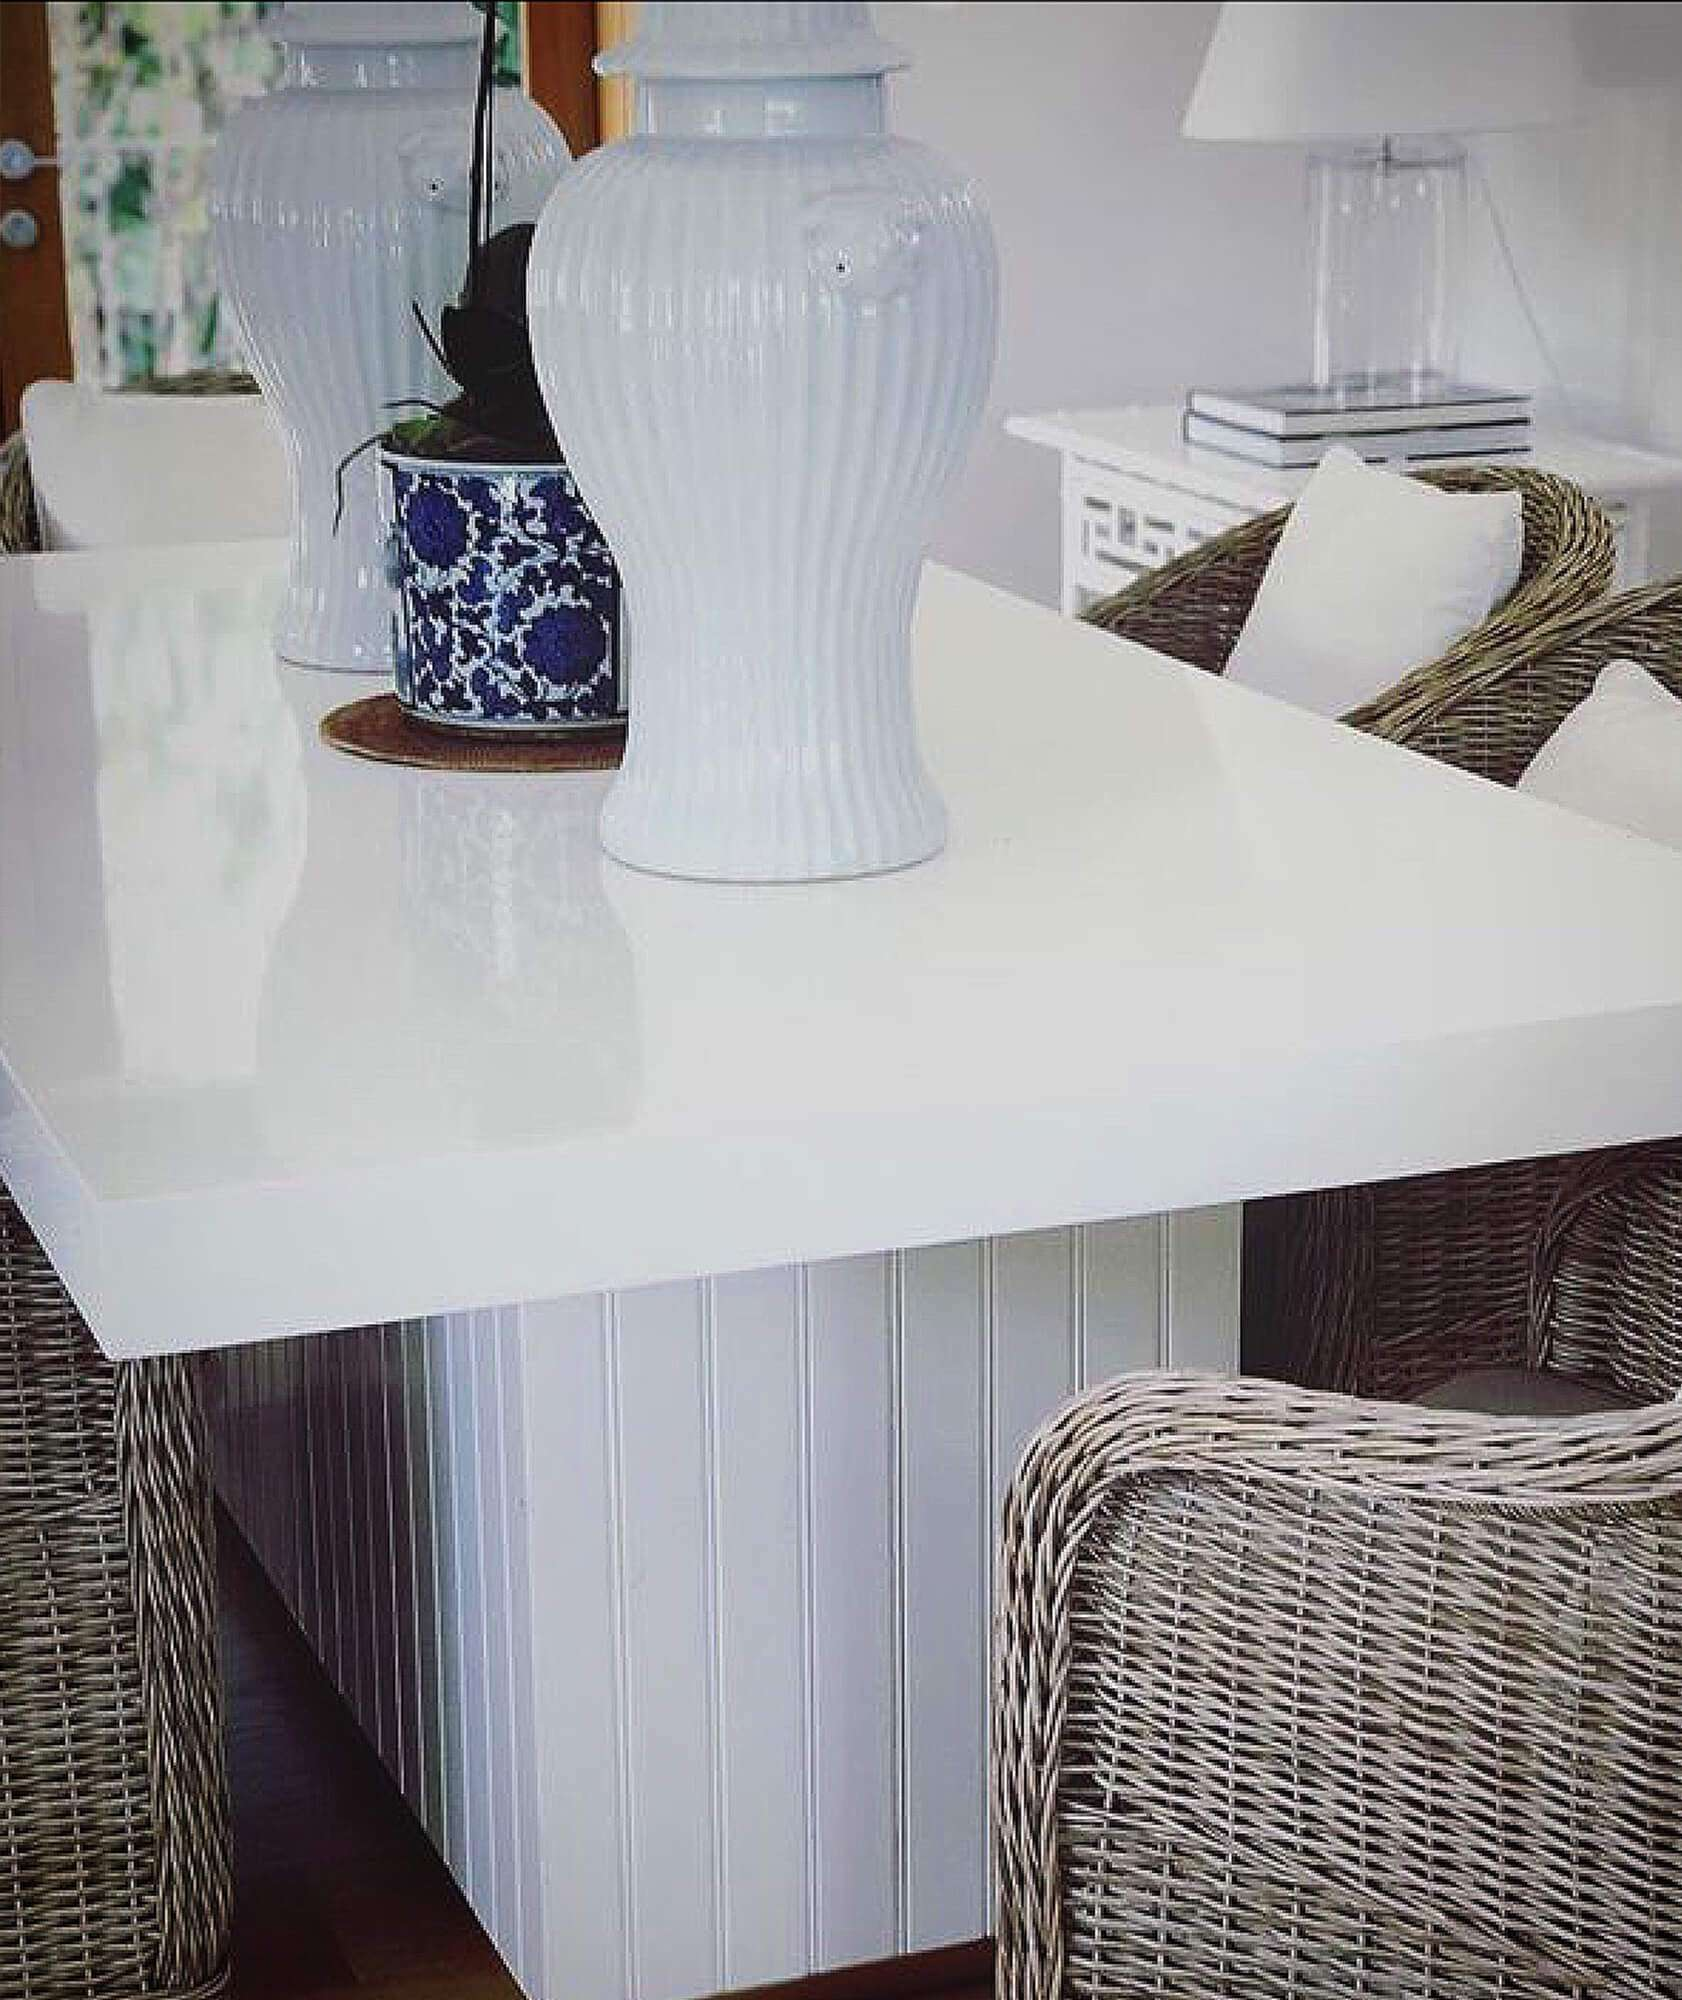 BOATHOUSE DINING TABLE RIGHTHAND - STUART MEMBERY HOME COLLECTION